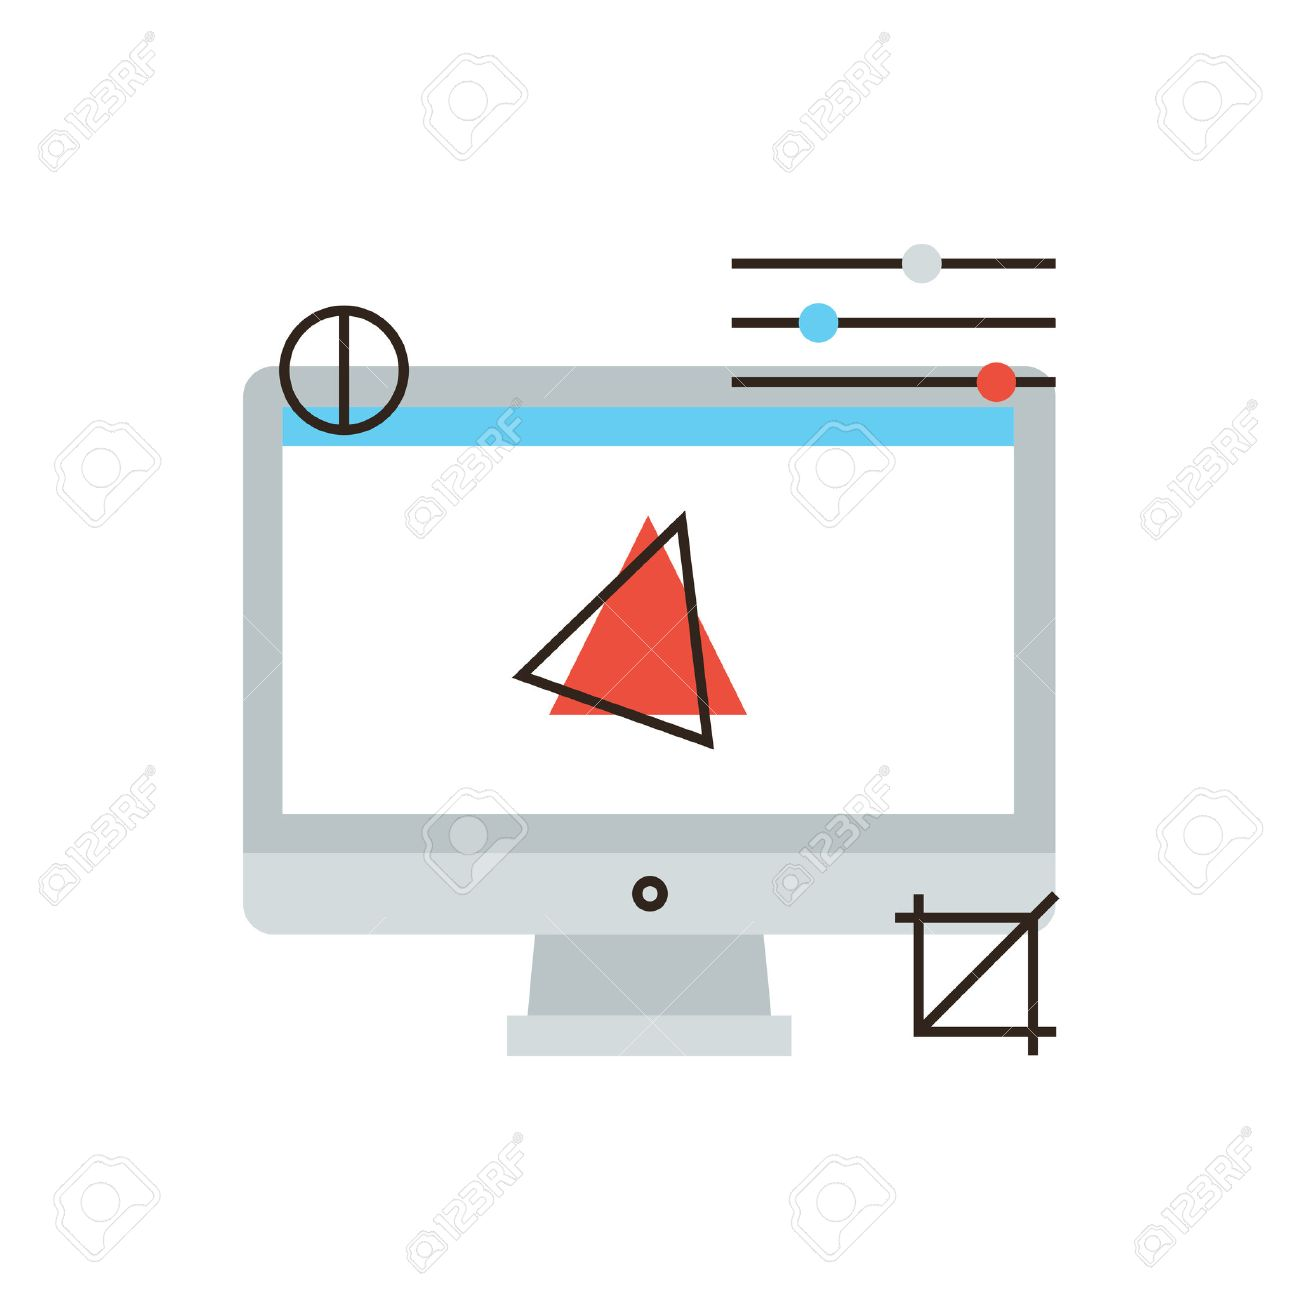 Thin Line Icon With Flat Design Element Of Computer Graphics Royalty Free Cliparts Vectors And Stock Illustration Image 38866987